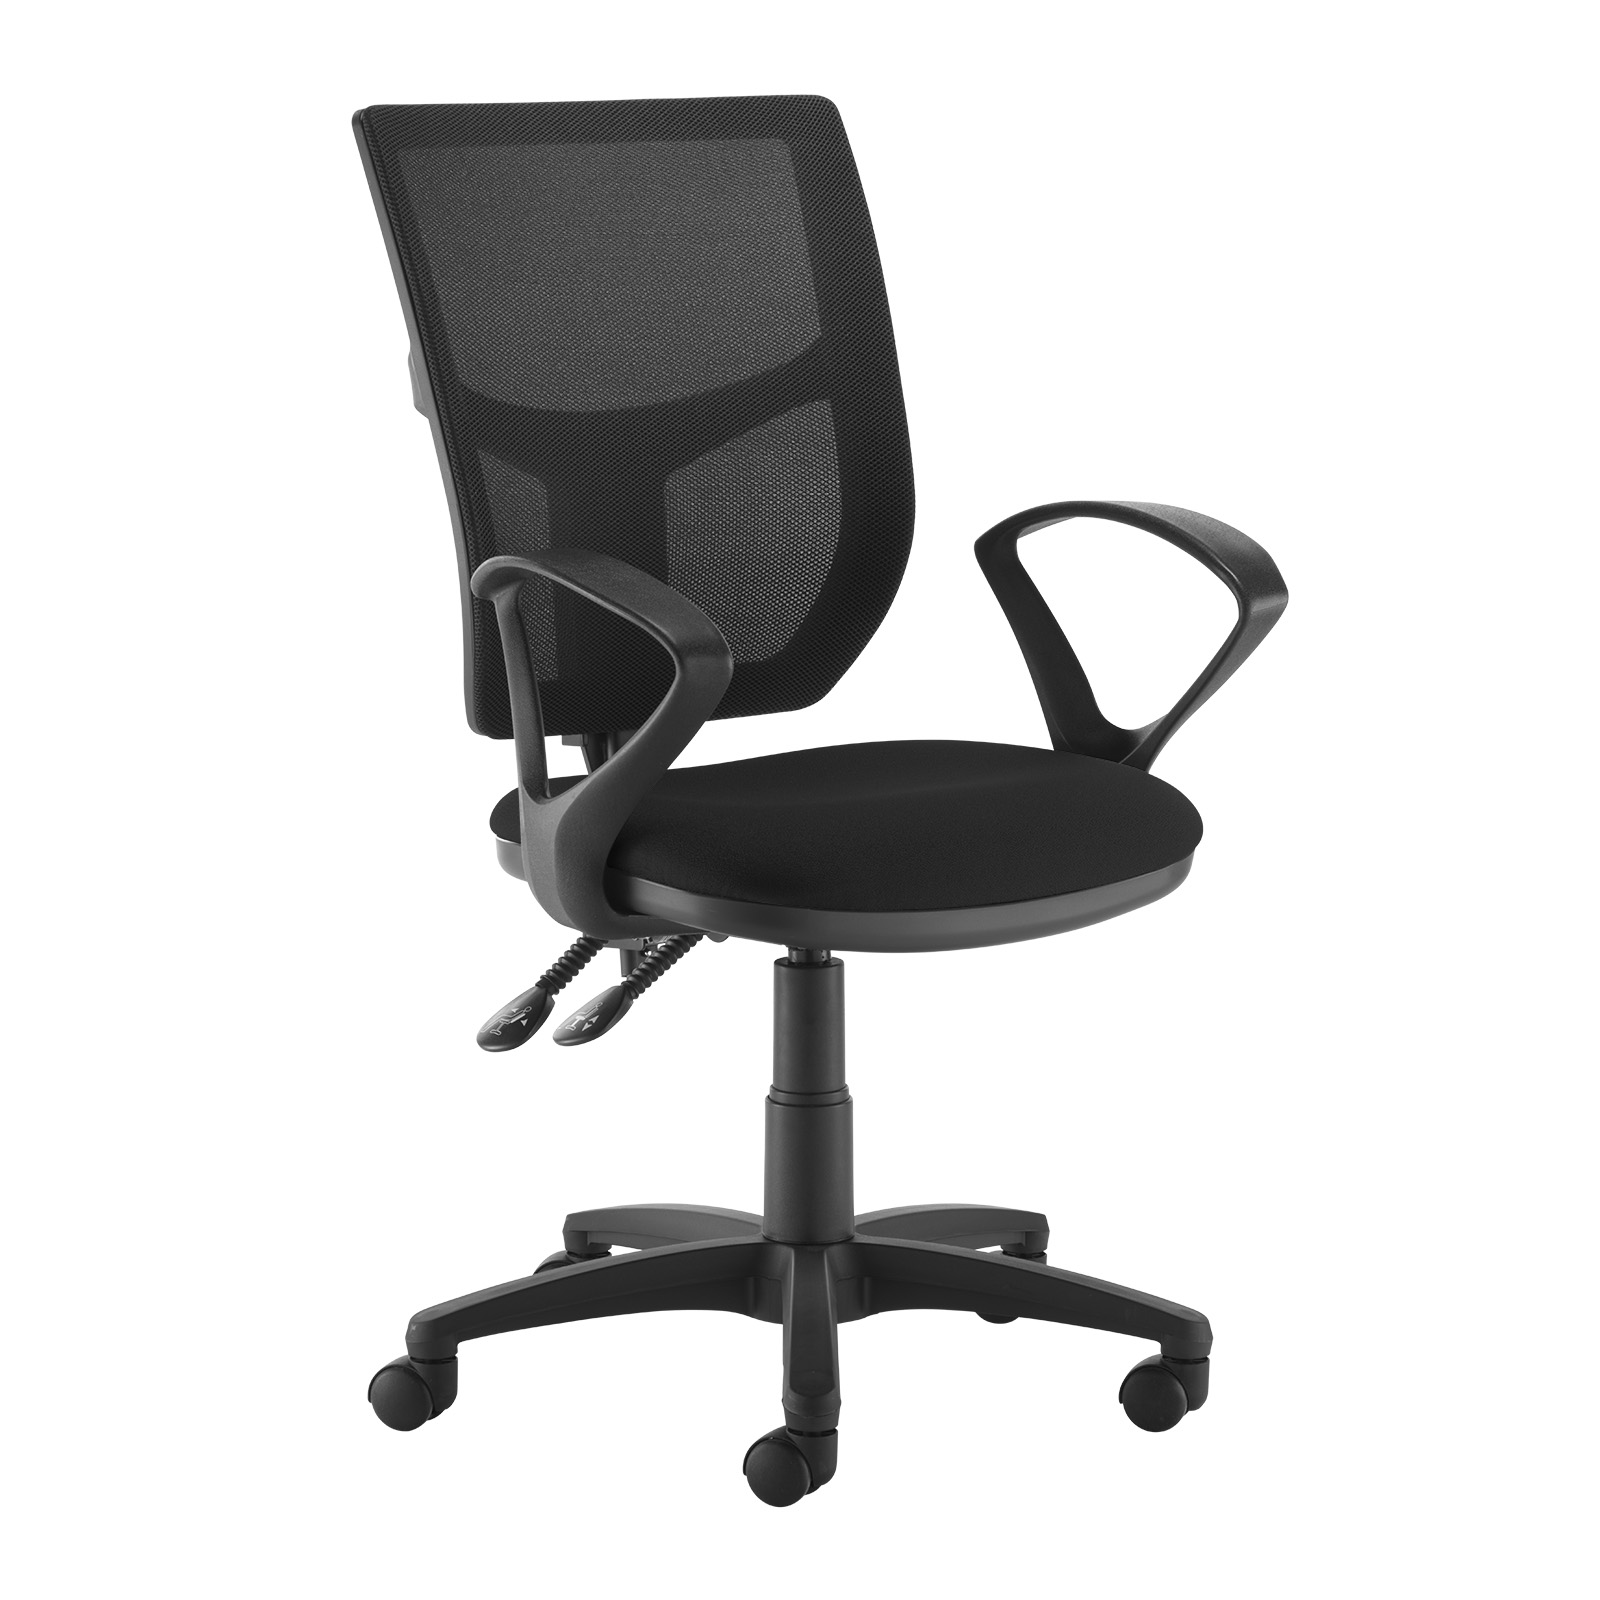 Desk Chairs Altino 2 lever high mesh back operators chair with fixed arms - black